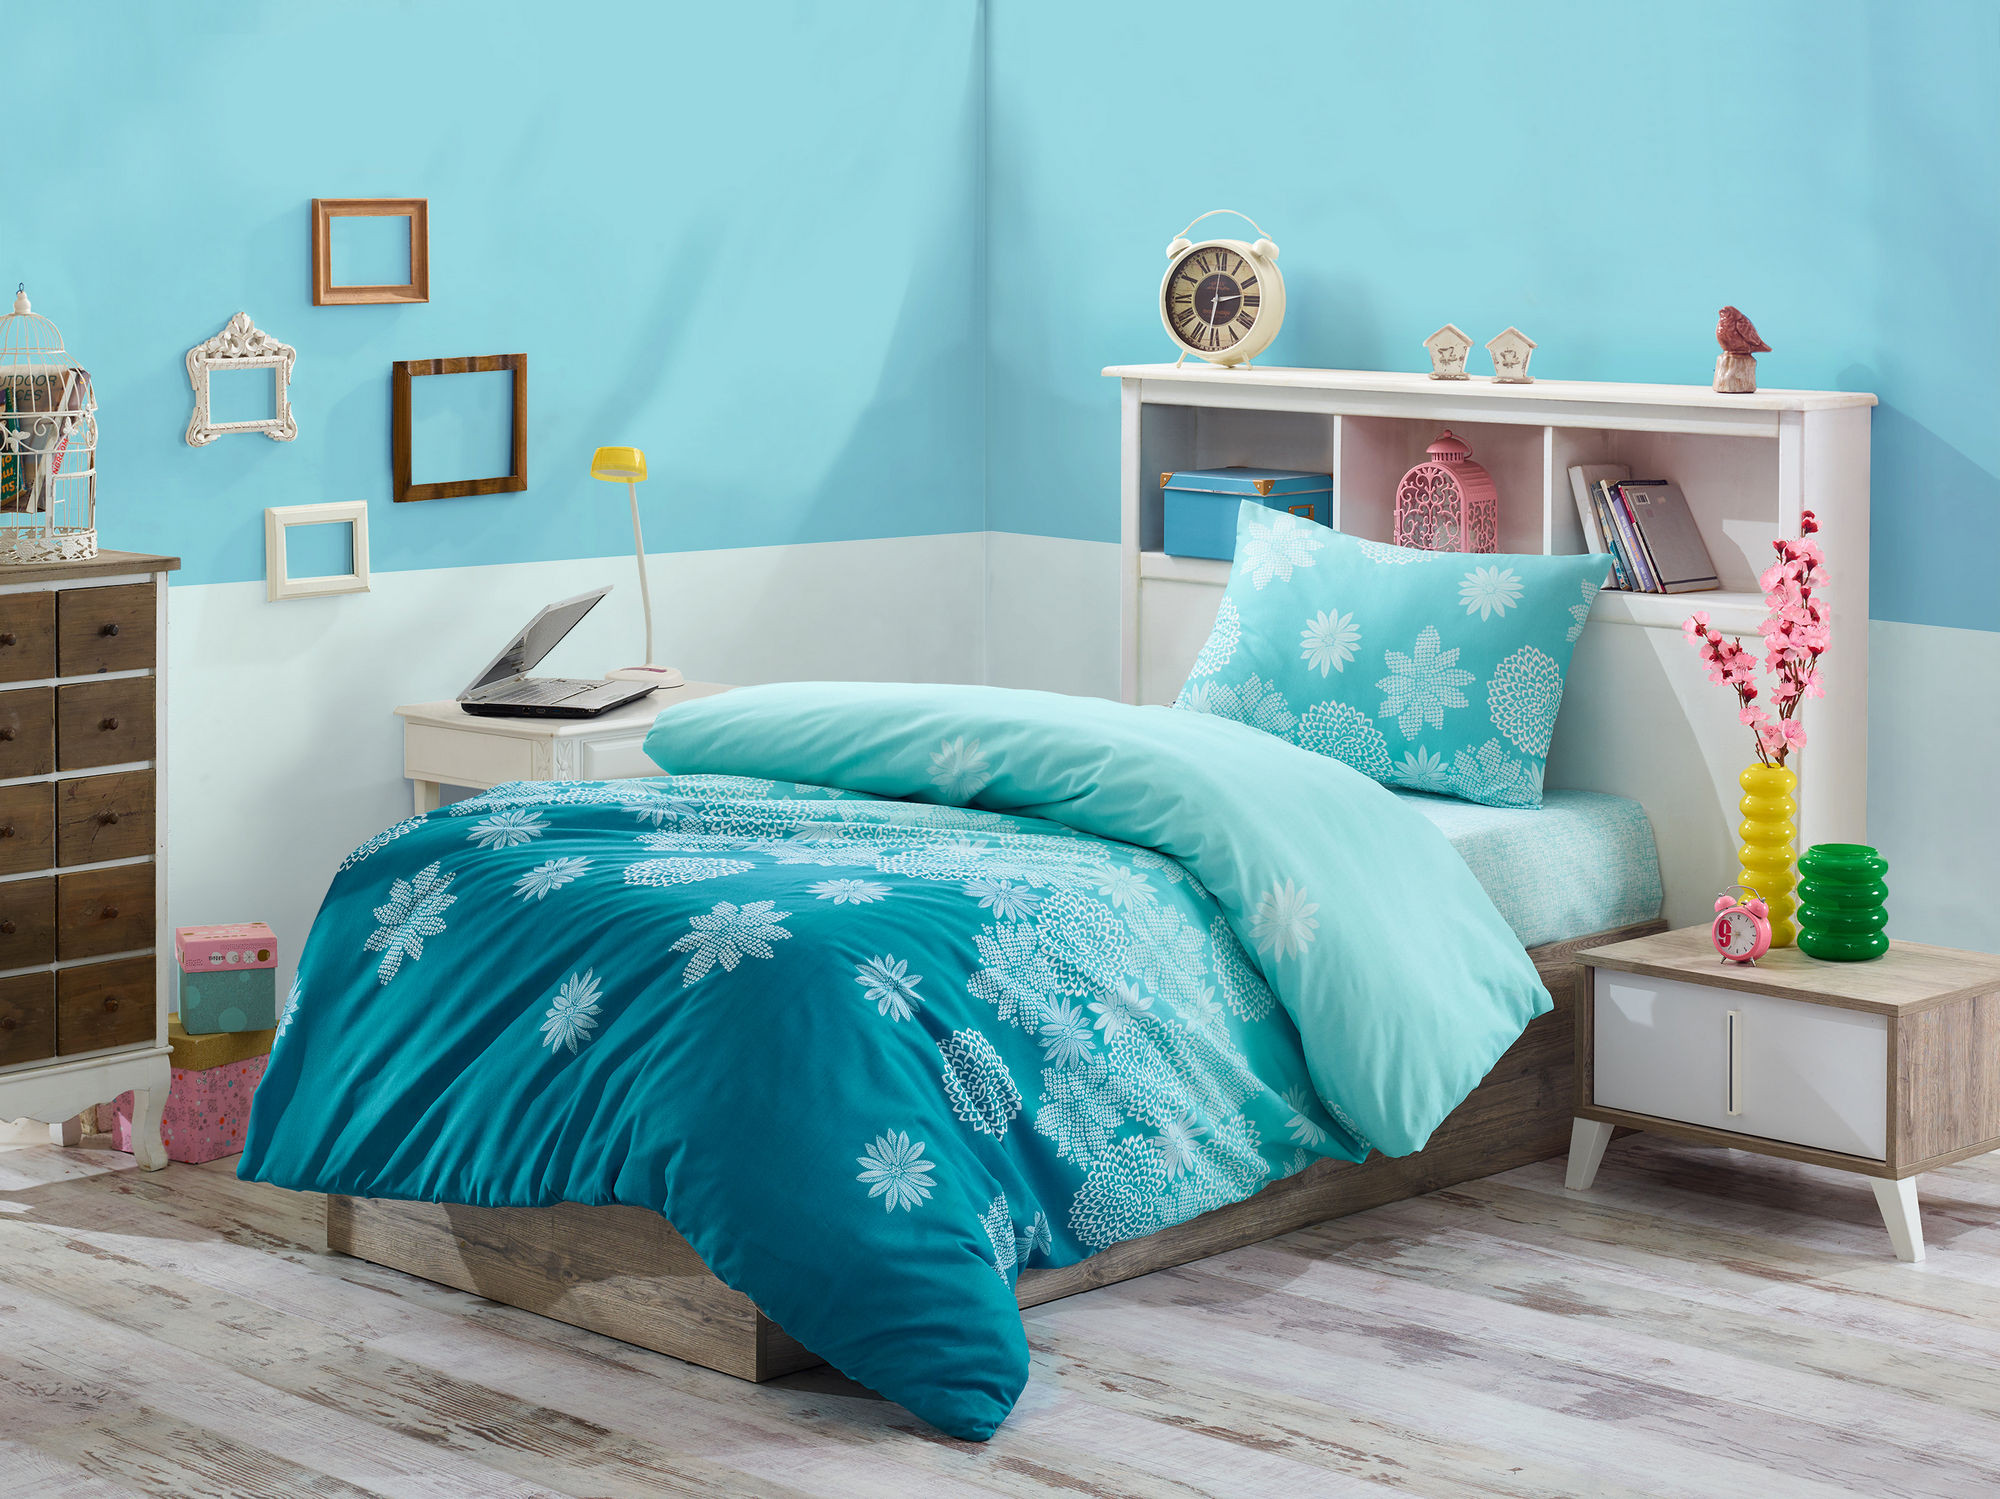 Turquoise Quilt Cover Turquoise And White Duvet Cover Miguel Barcelo